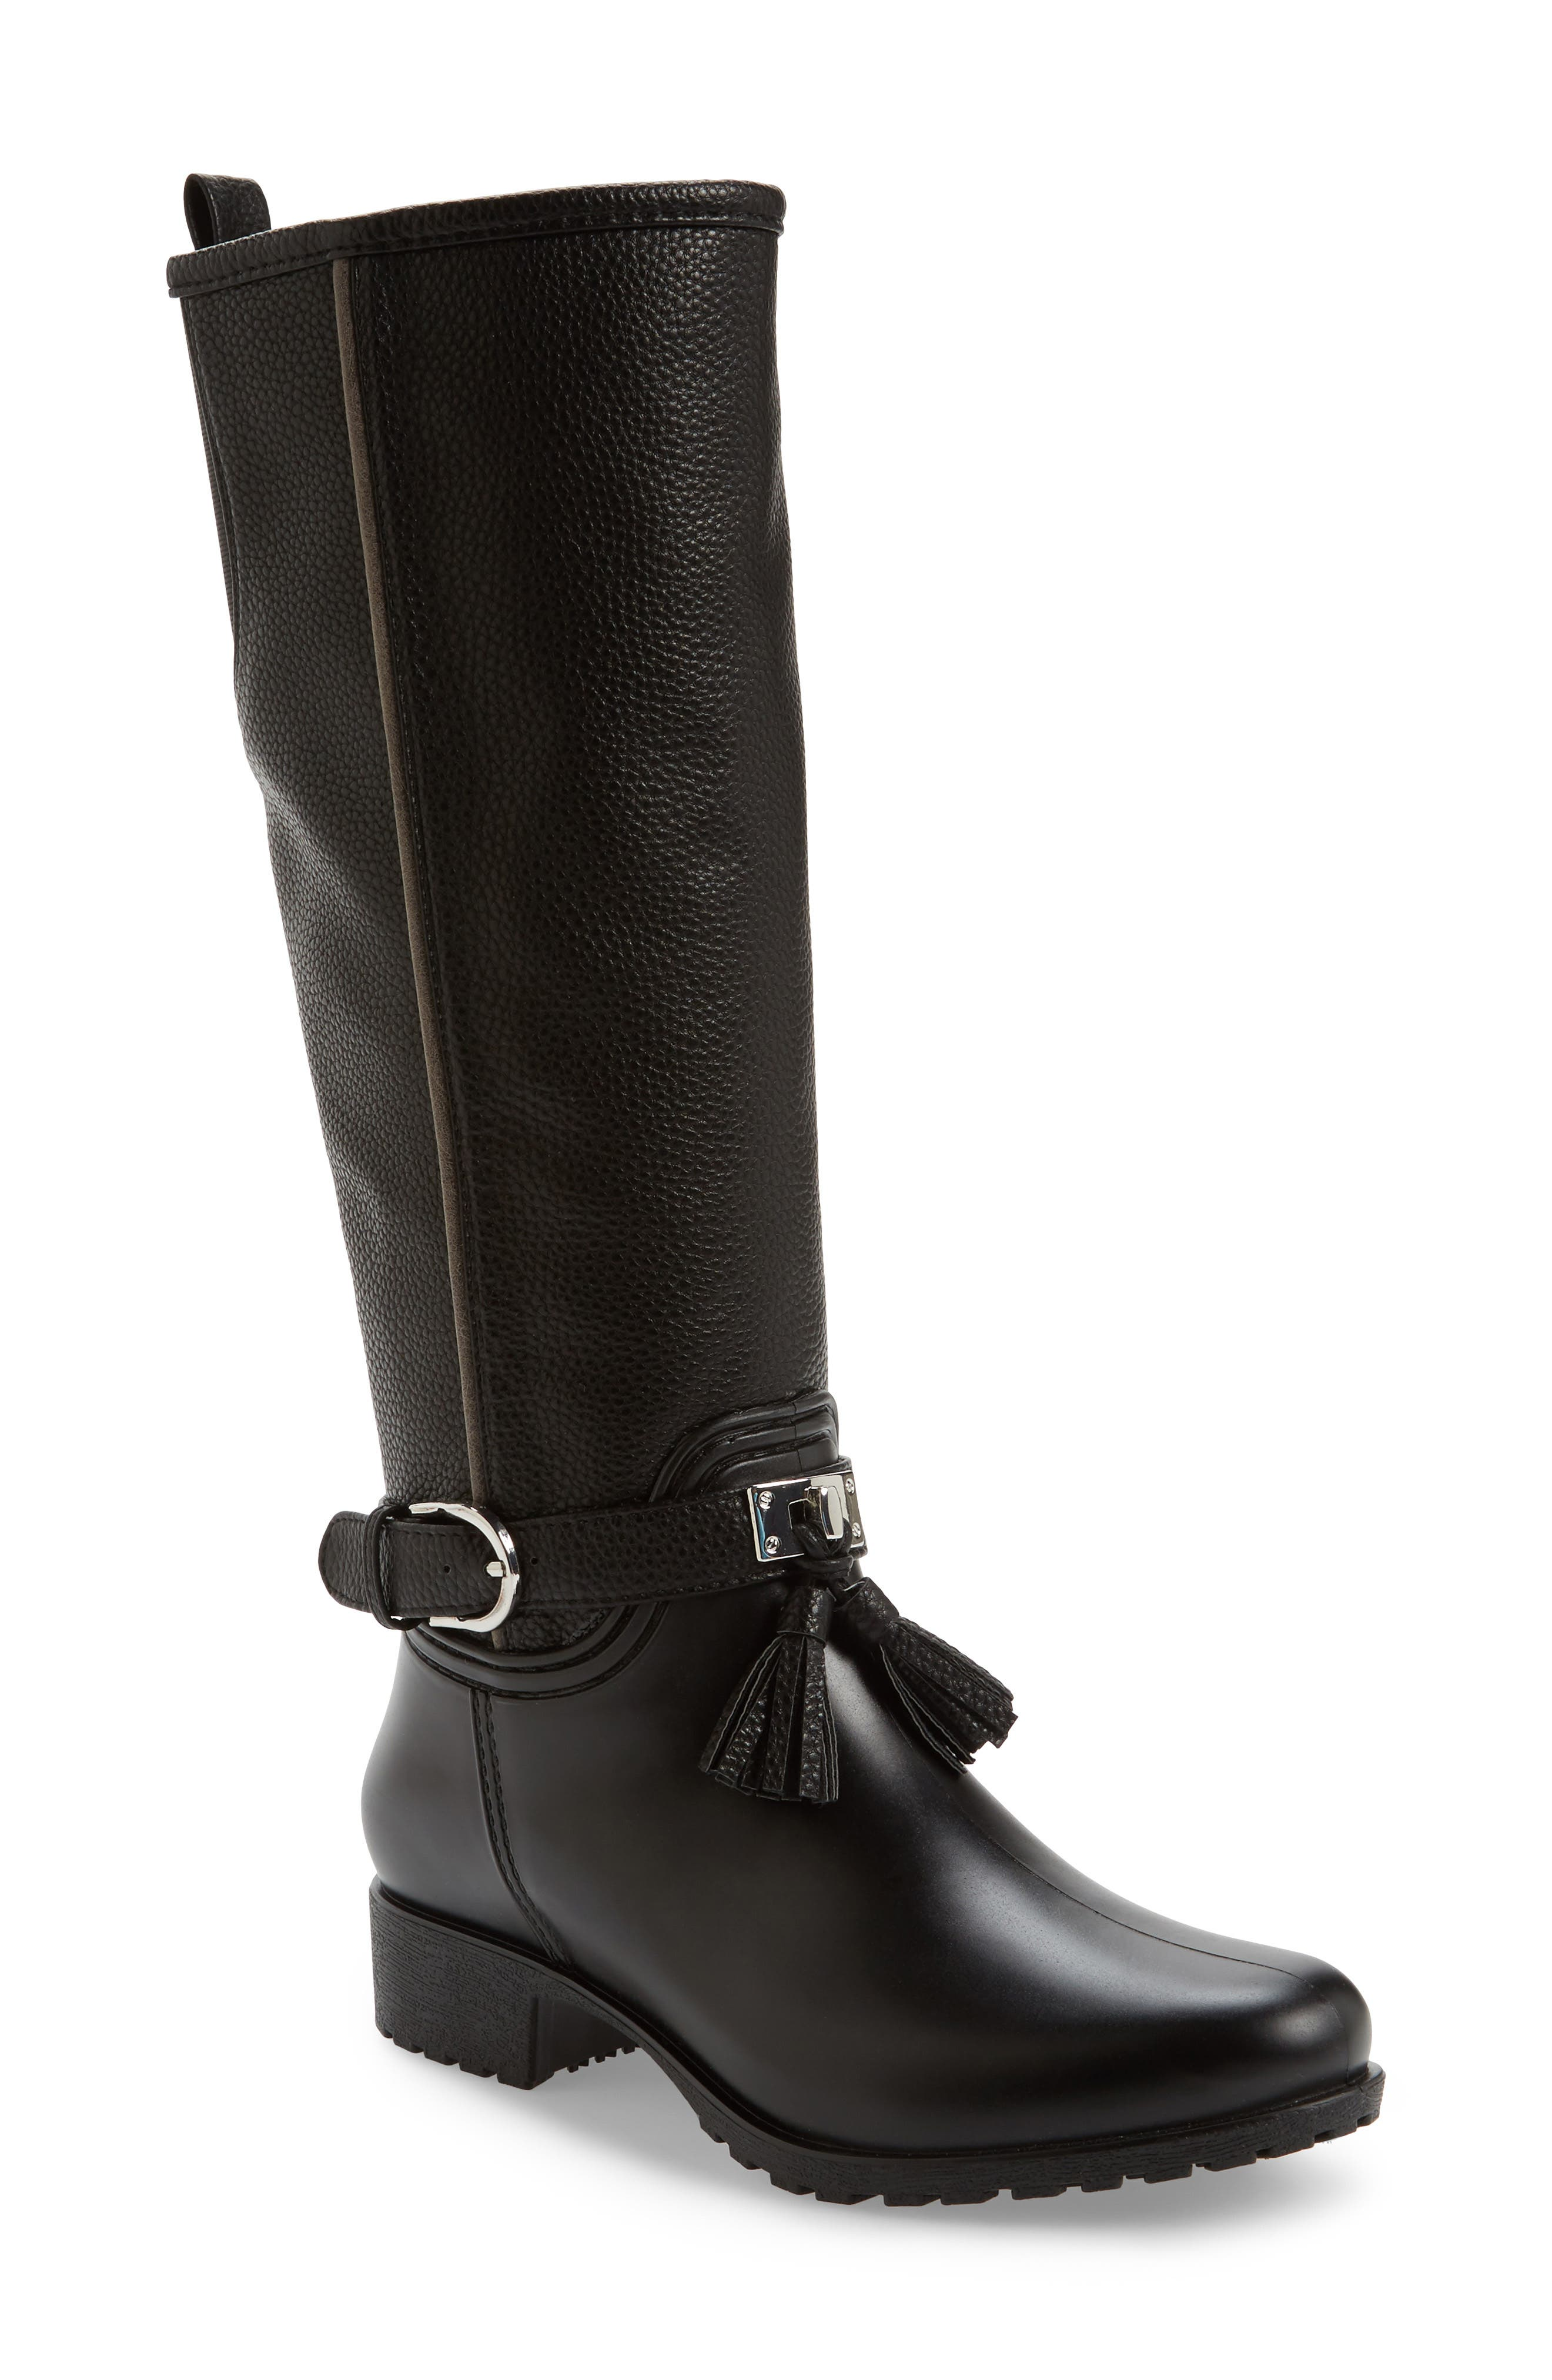 DÄV Inverness Faux Shearling Lined Water Resistant Boot, Main, color, BLACK